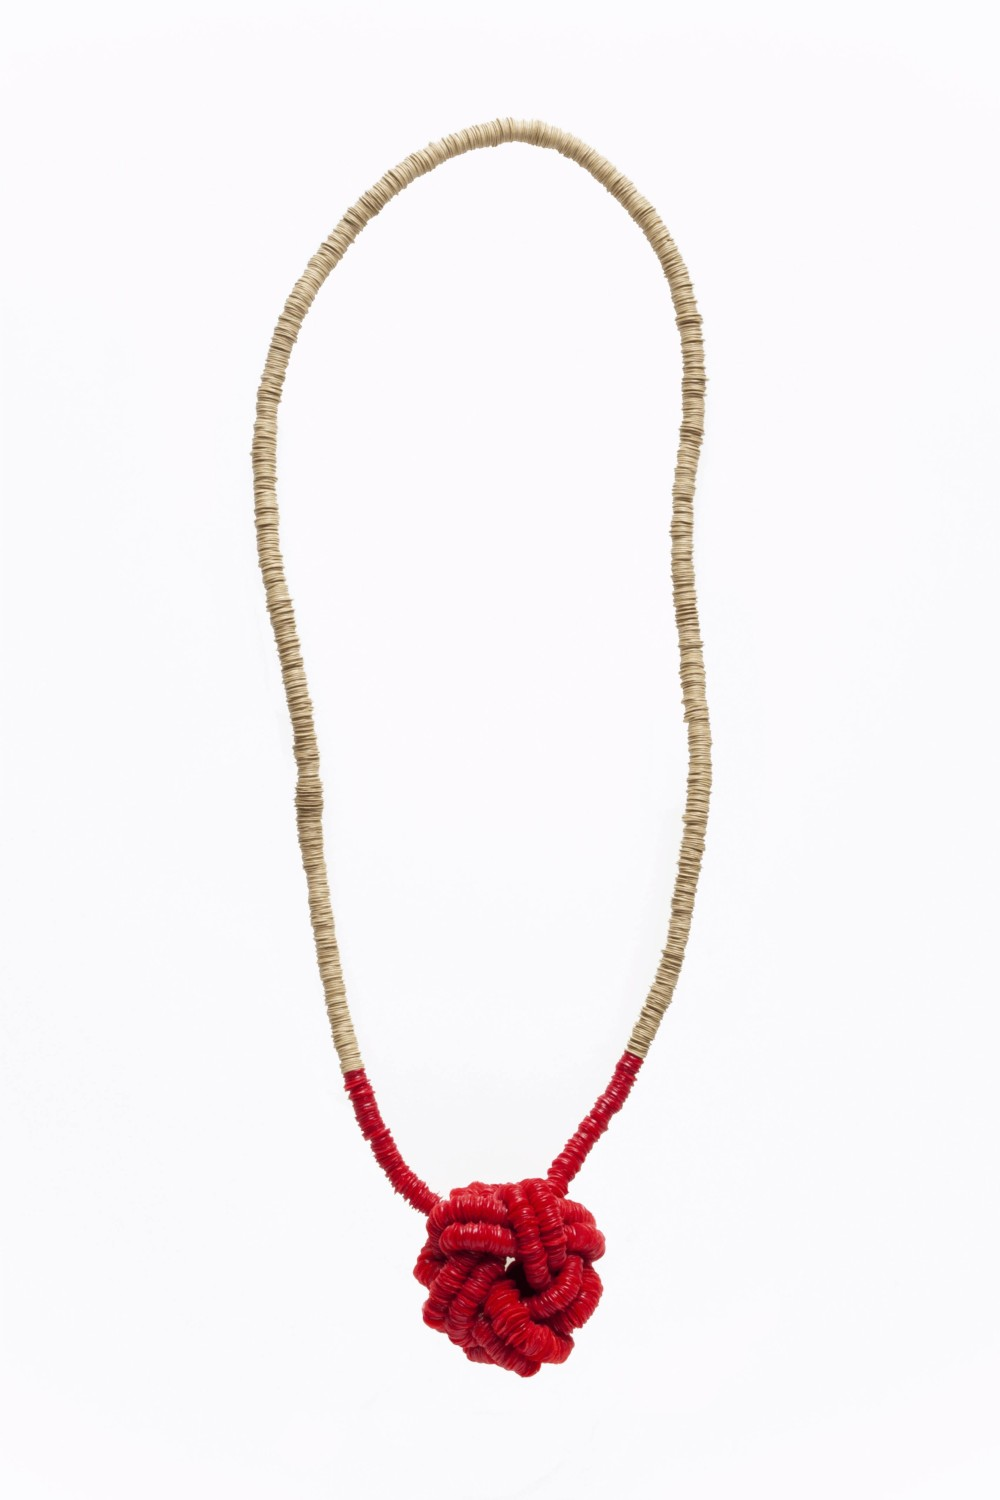 brown and red plastic necklace